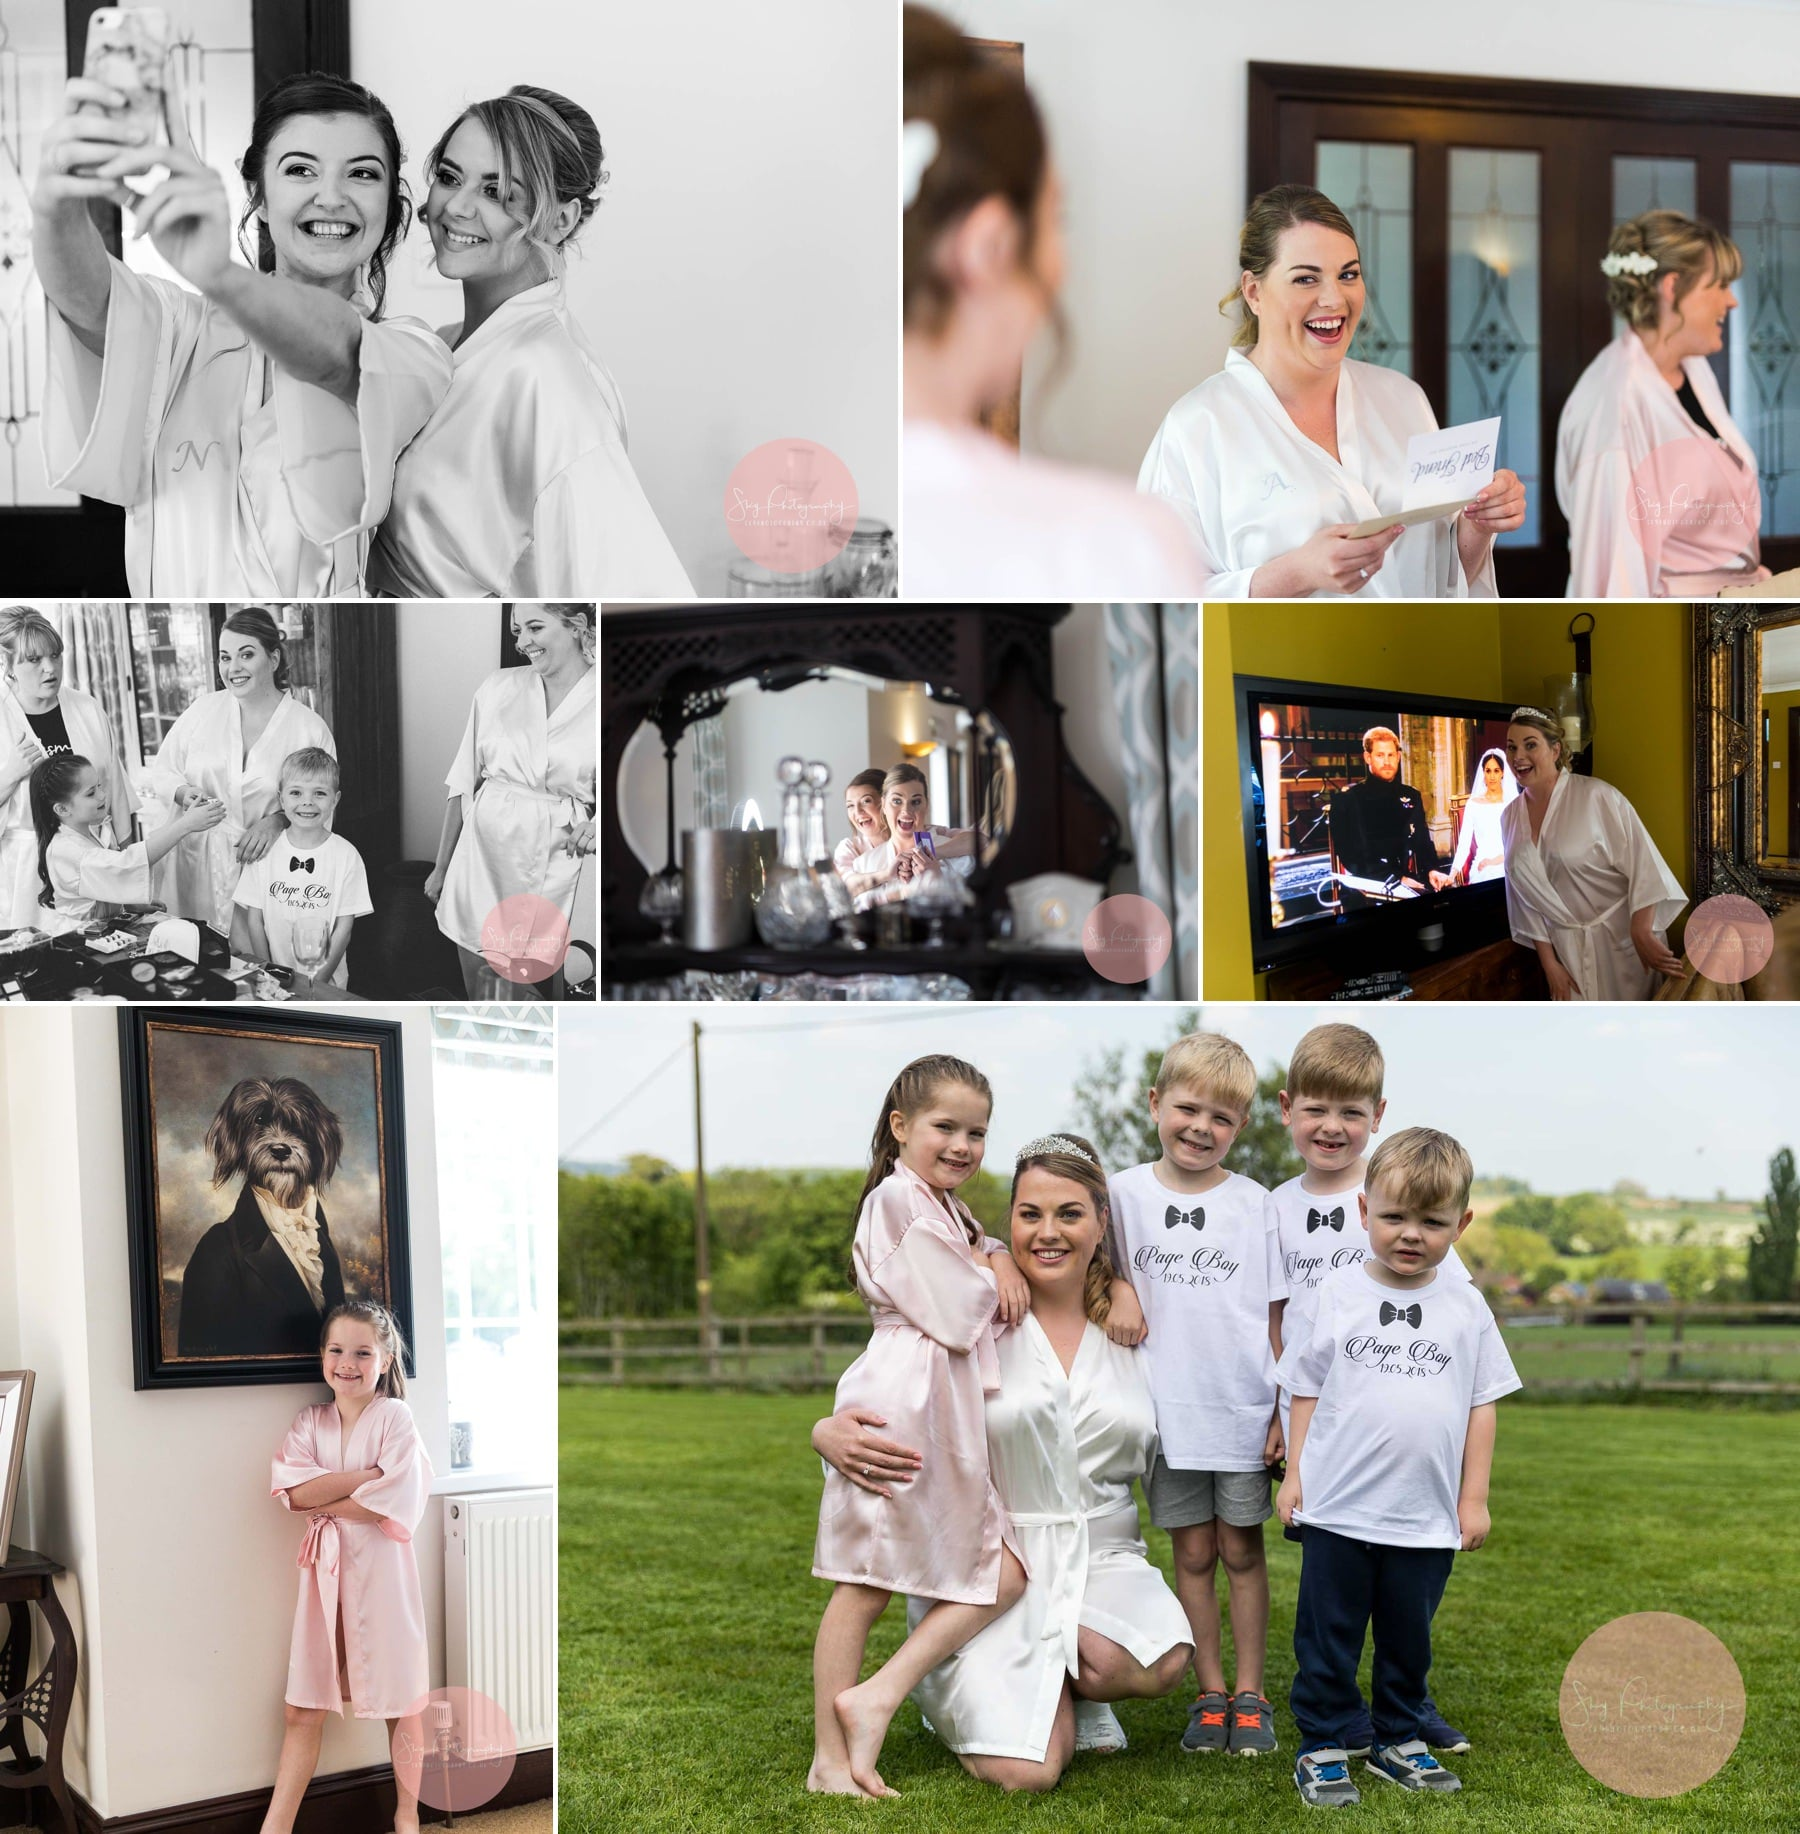 Dodford Grange A45, Bridesmaids, bride, page boys and flowers girl getting ready for the wedding at dodford manor, Collage of 7 photos